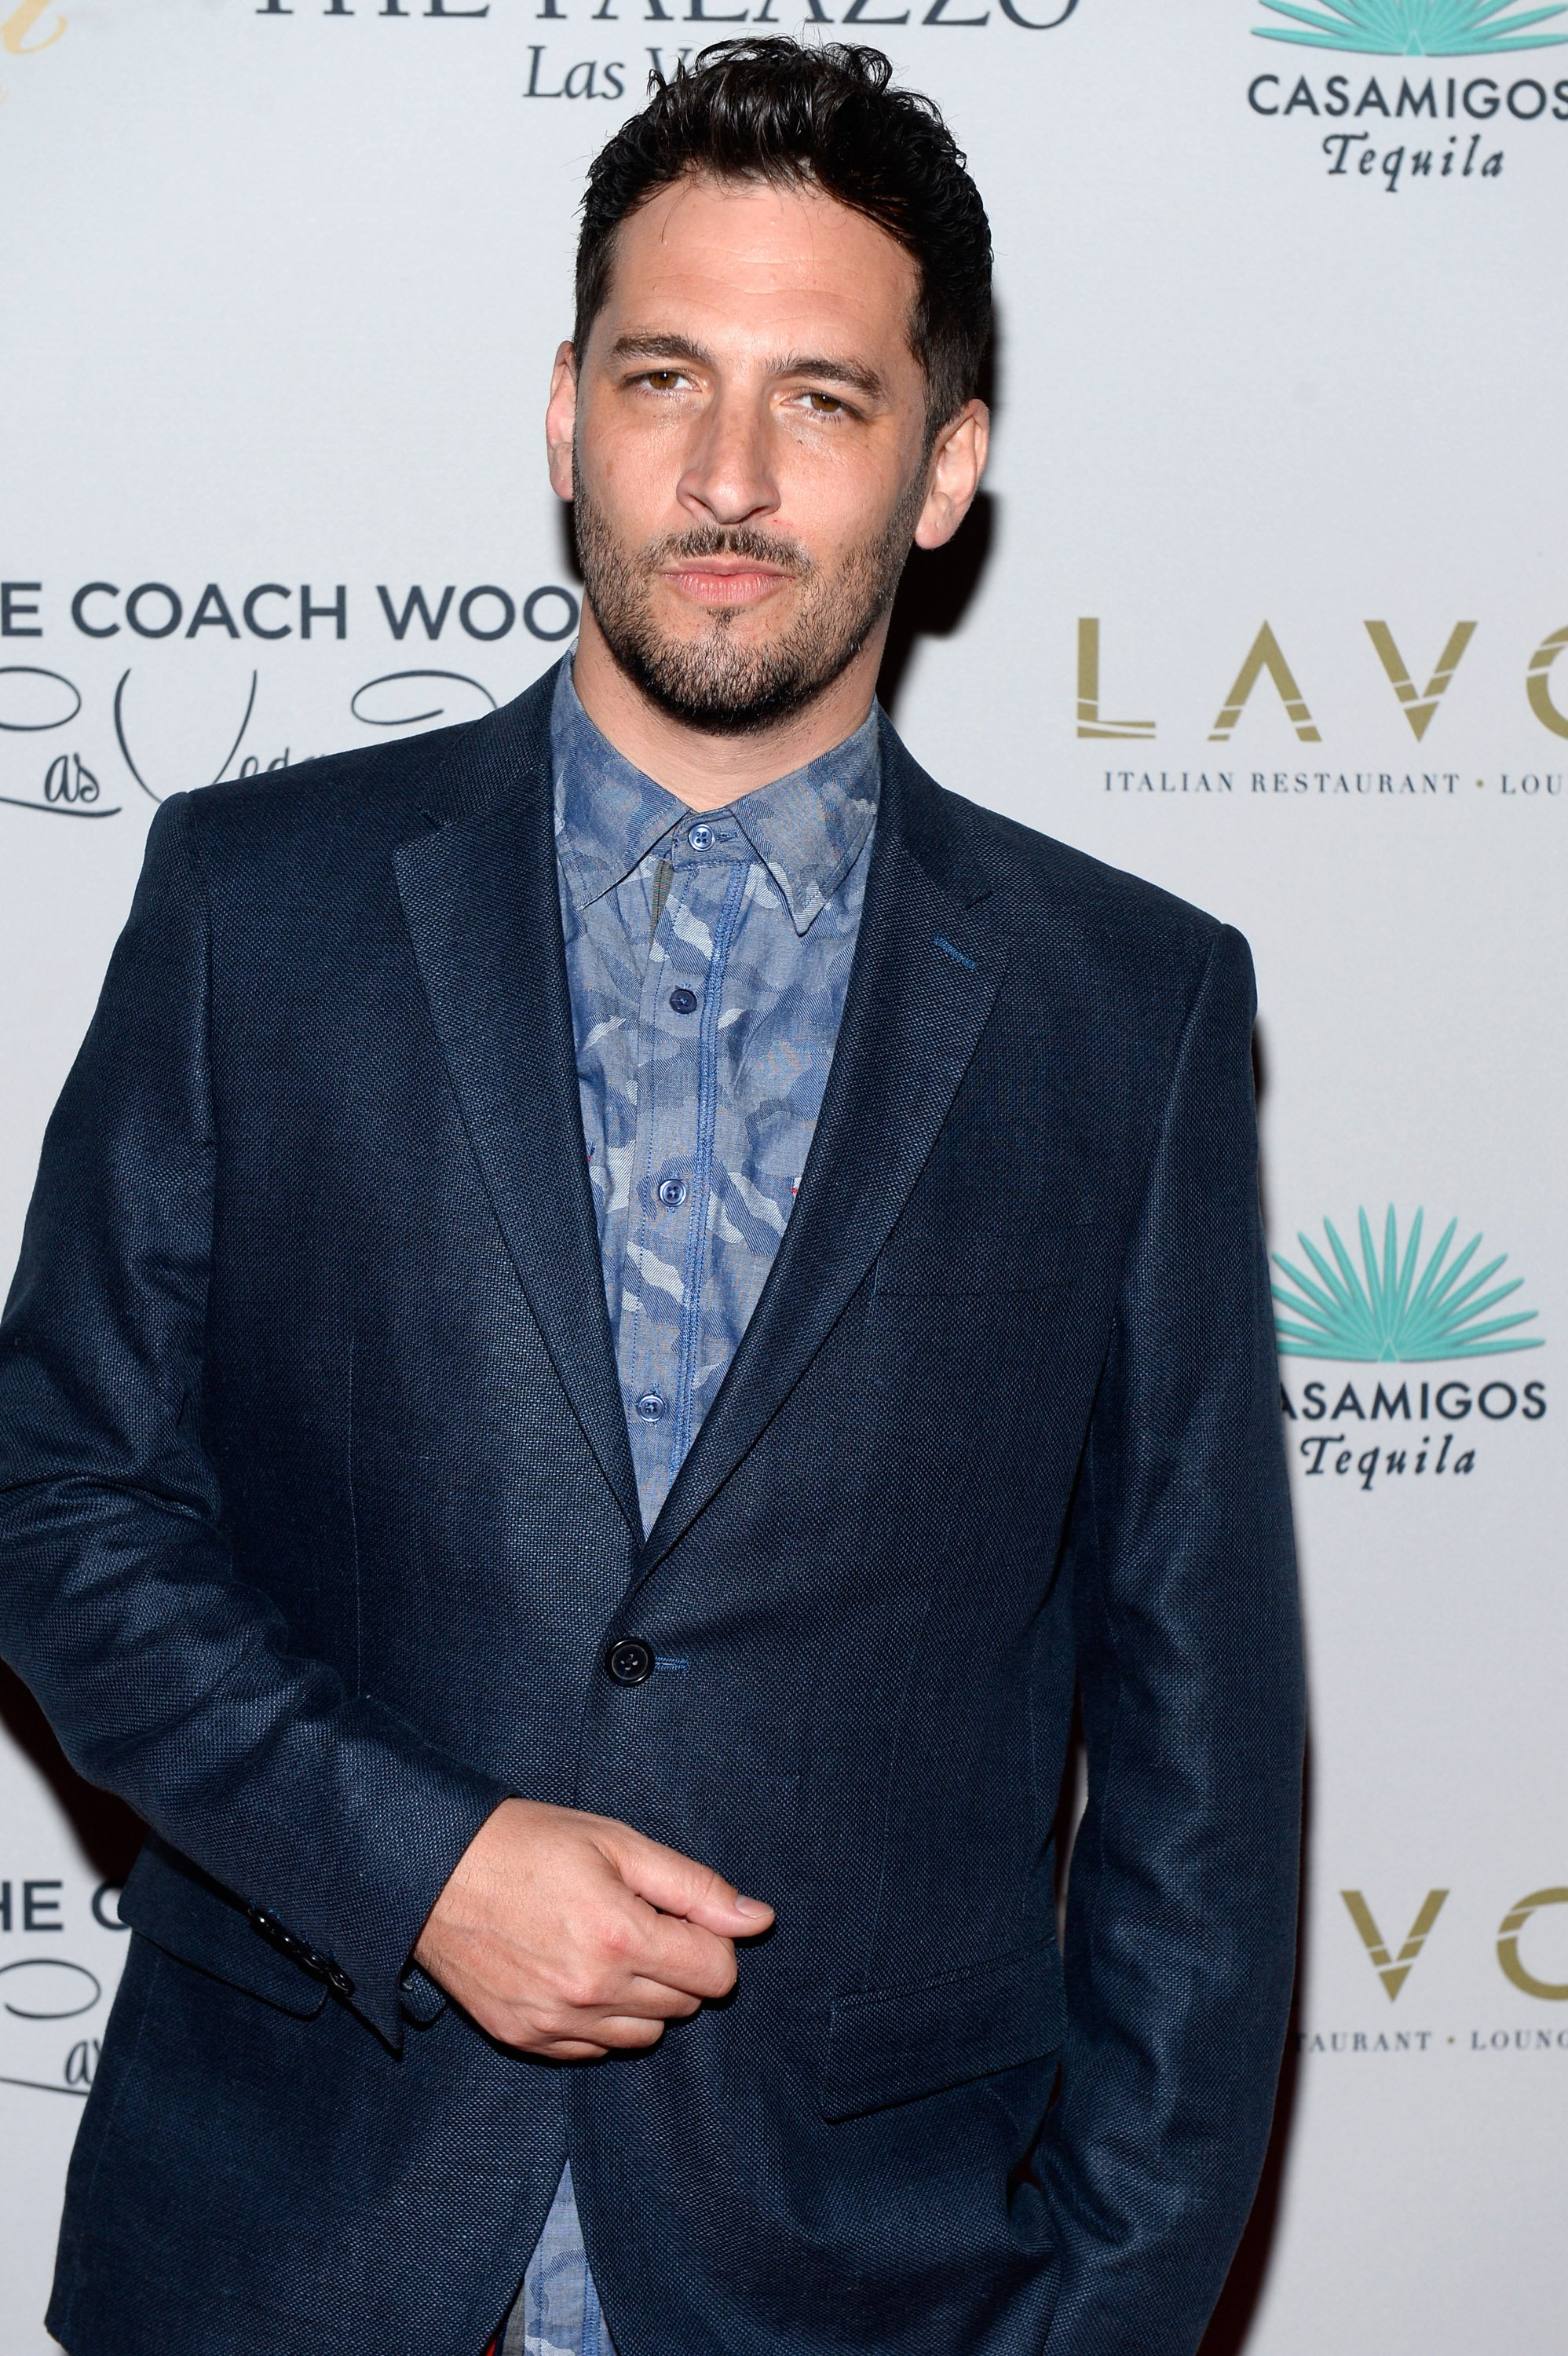 Singer/songwriter John B arrives at the second annual Coach Woodson Las Vegas Invitational pairings party at the Lavo Restaurant & Nightclub at The Palazzo Las Vegas on July 12, 2015 in Las Vegas, Nevada   Photo: Getty Images